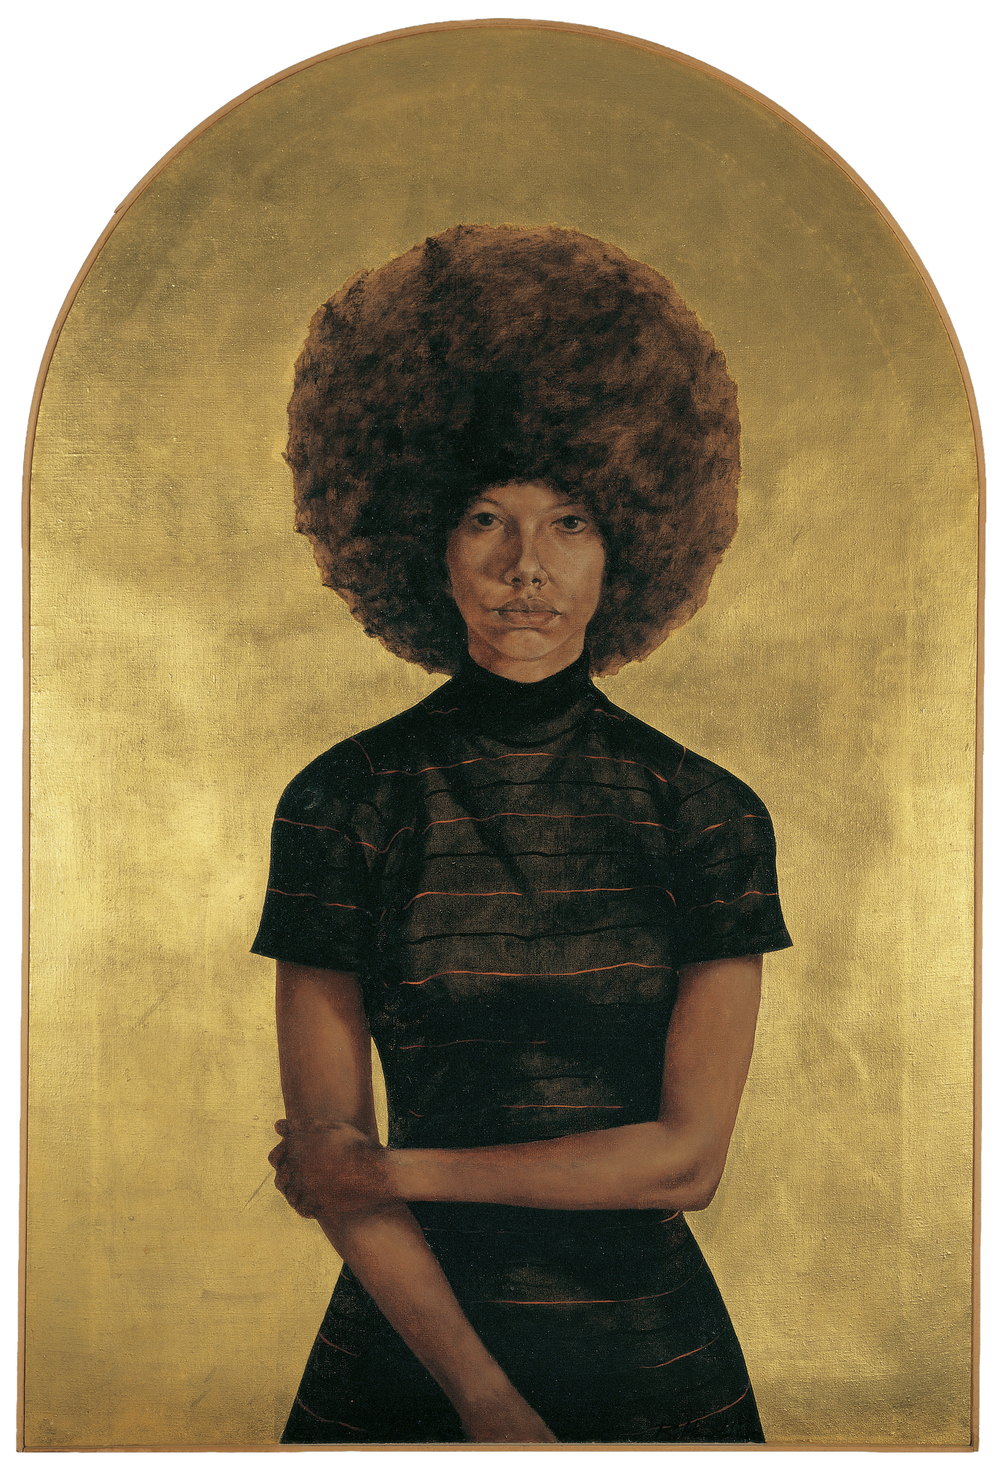 Barkley L. Hendricks (American, born 1945). Lawdy Mama, 1969. Oil and gold leaf on canvas, 53 3/4 x 36 1/4 in. (136.5 x 92.1 cm). The Studio Museum in Harlem, Gift of Stuart Liebman, in memory of Joseph B. Liebman, 83.25. © Barkley L. Hendricks. Photo: Courtesy of the artist and Jack Shainman Gallery, New York    Witness: Art and Civil Rights in the Sixties is organized by the Brooklyn Museum